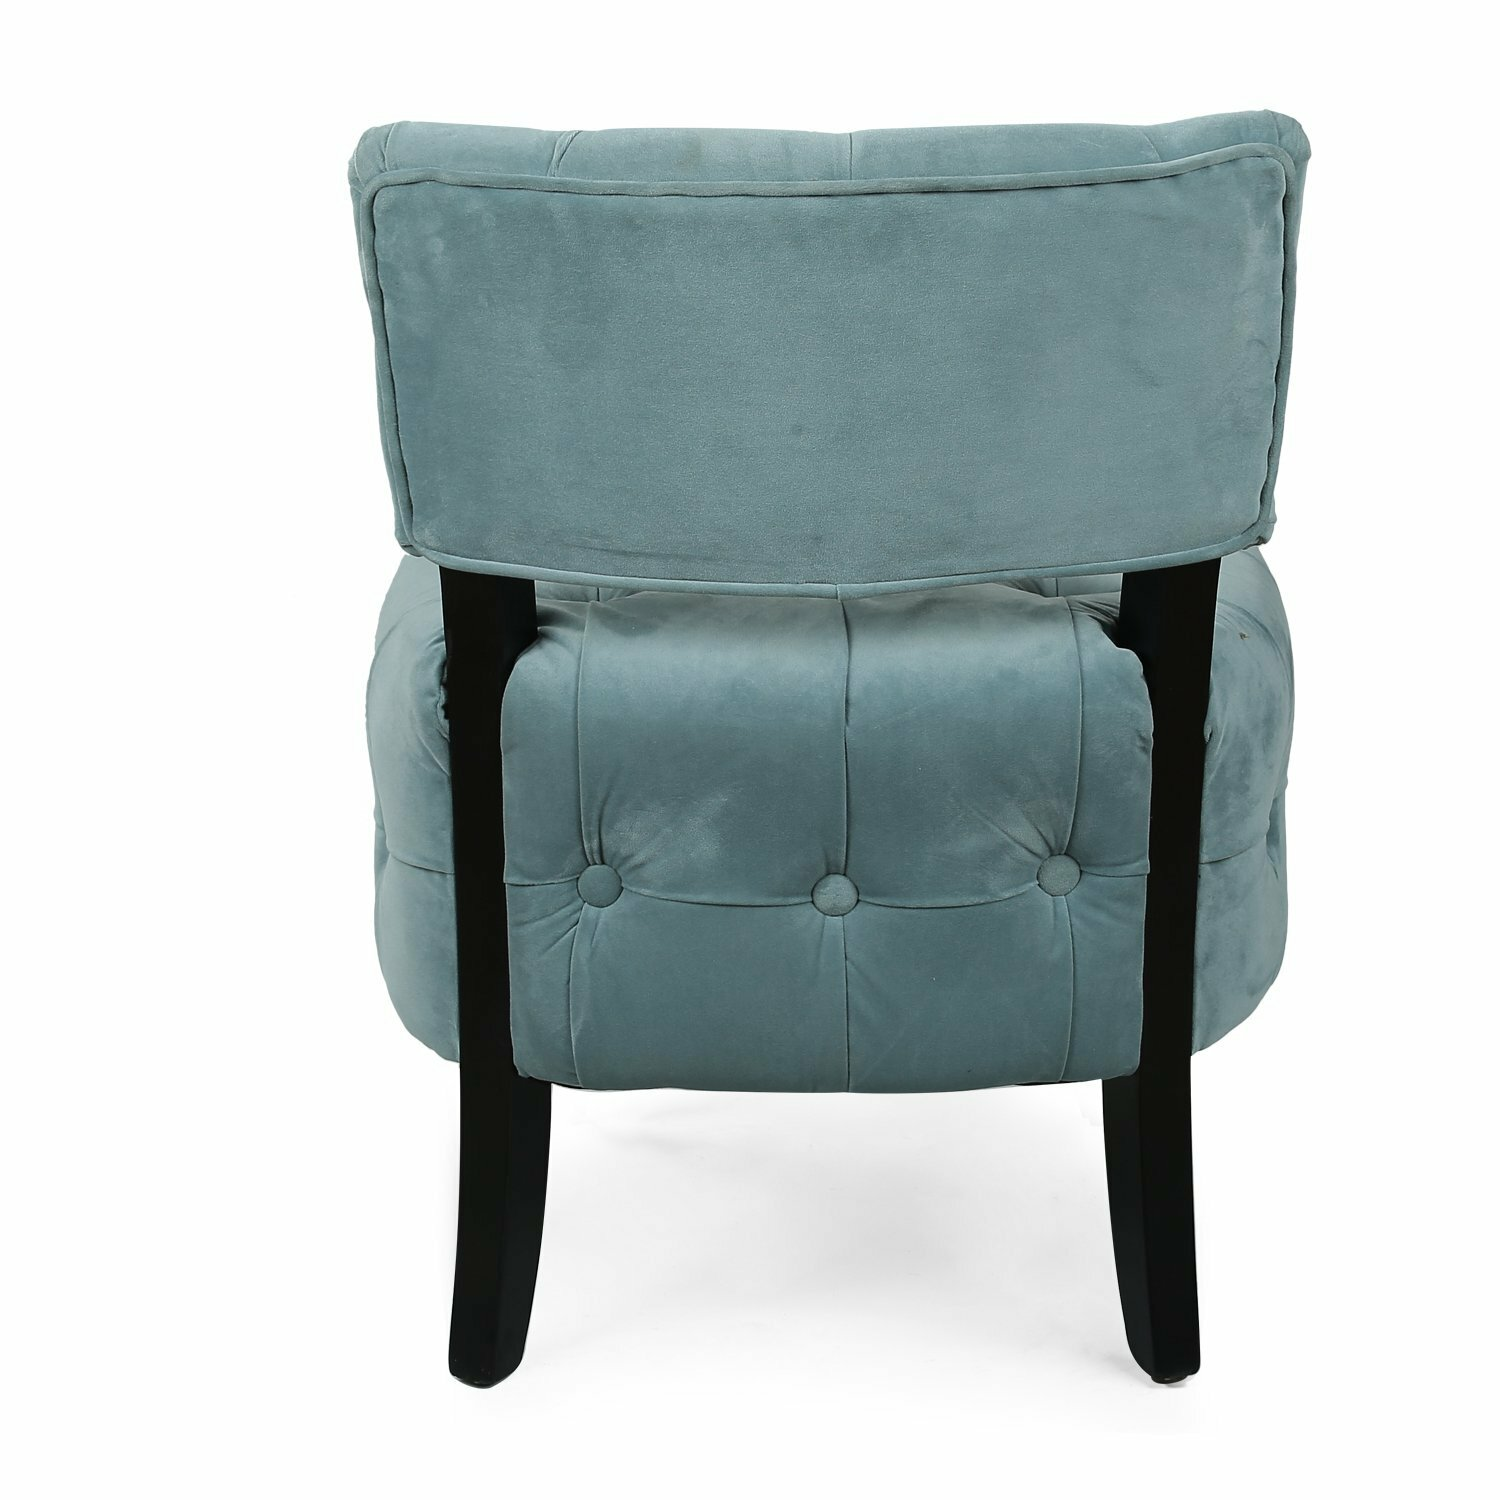 Adecotrading single living room side chair wayfair for Single chairs for living room